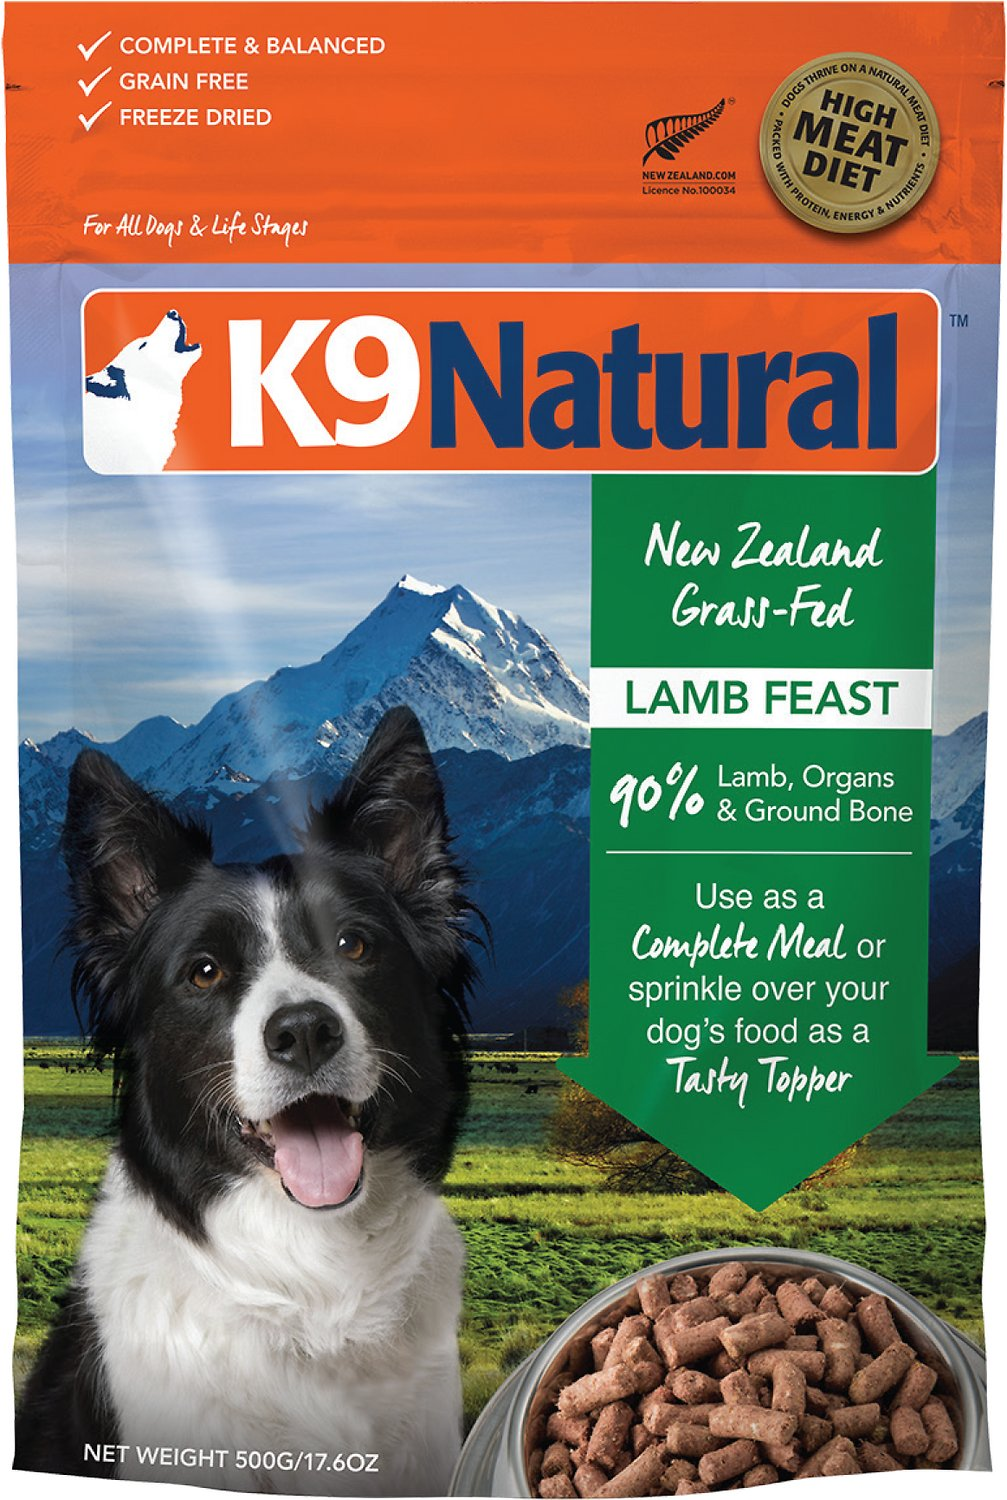 Wolfking Dog Food Reviews